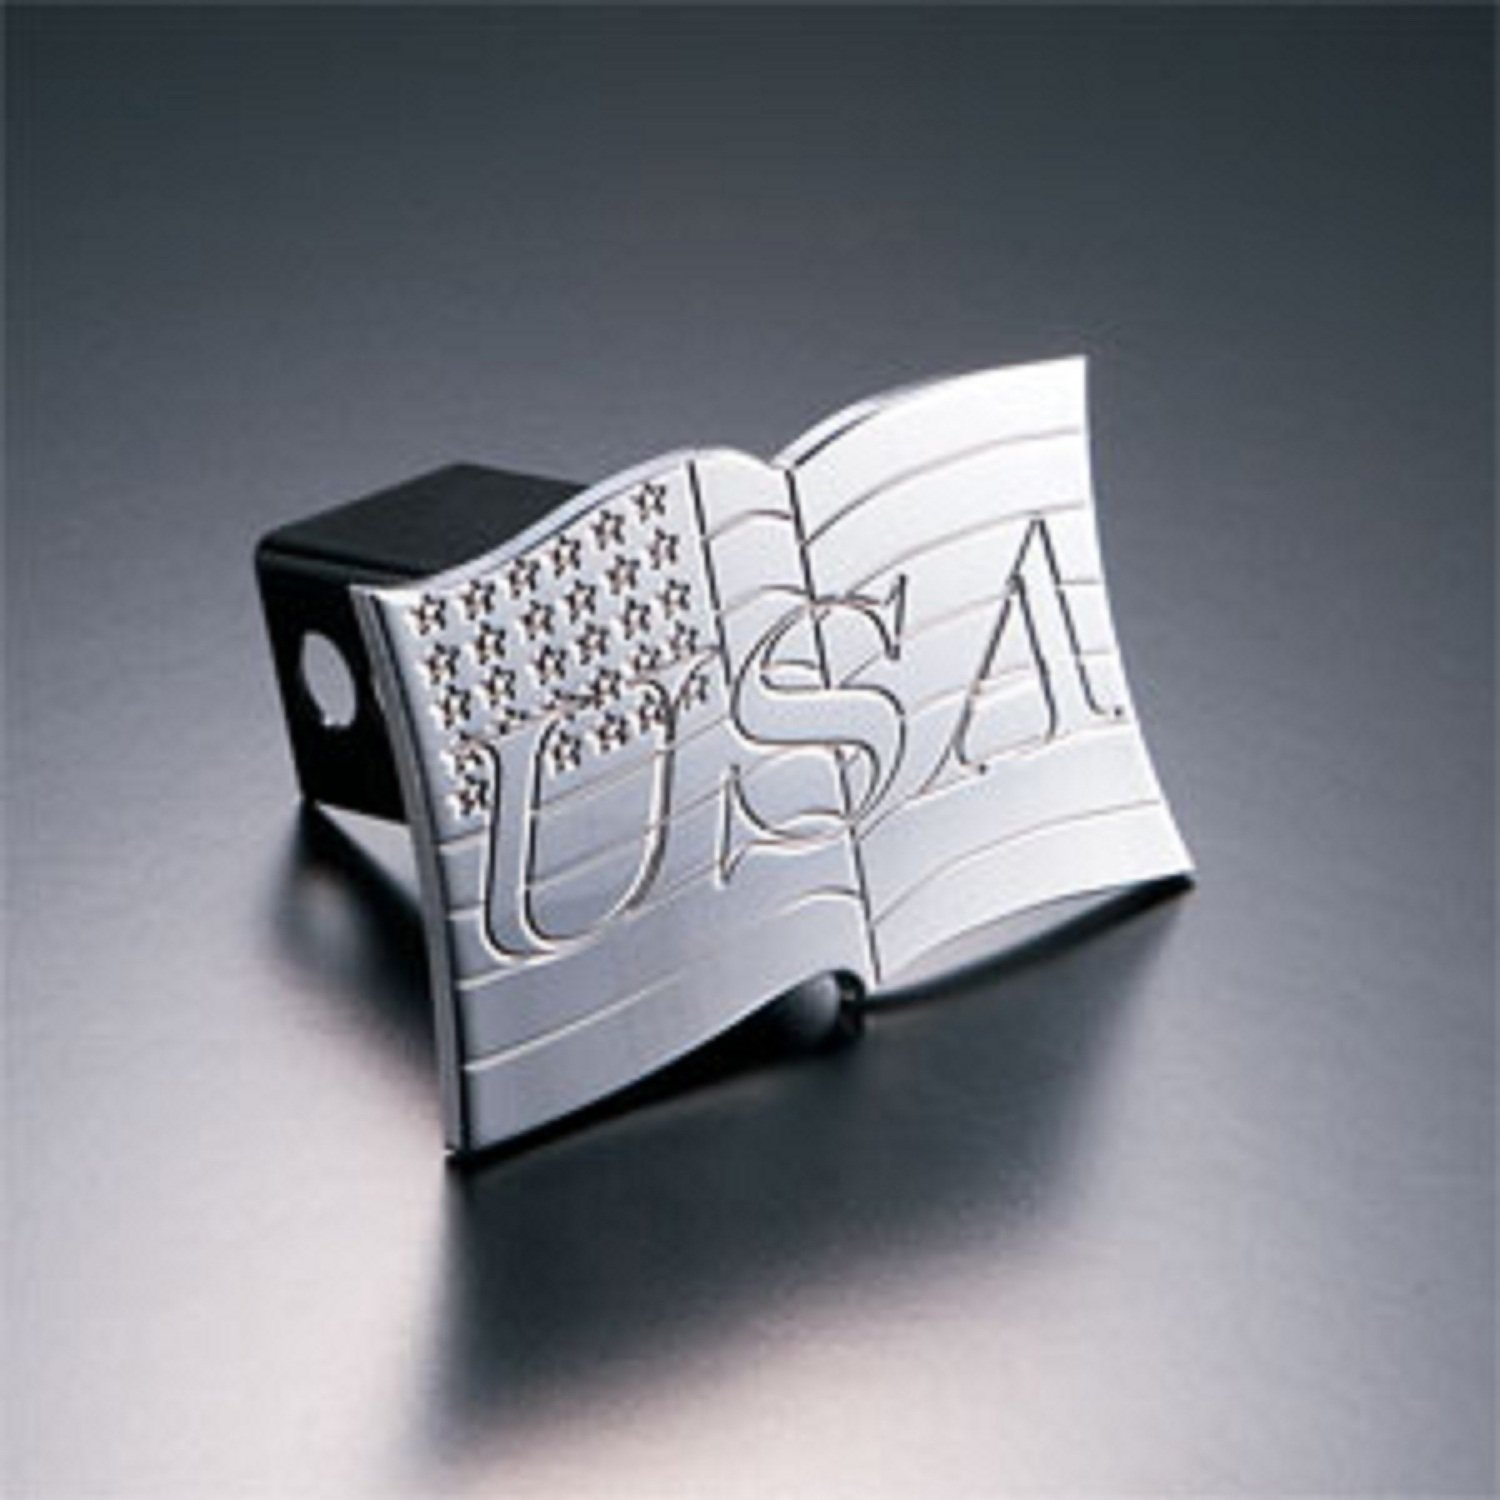 All Sales 1009 Trailer Hitch Cover